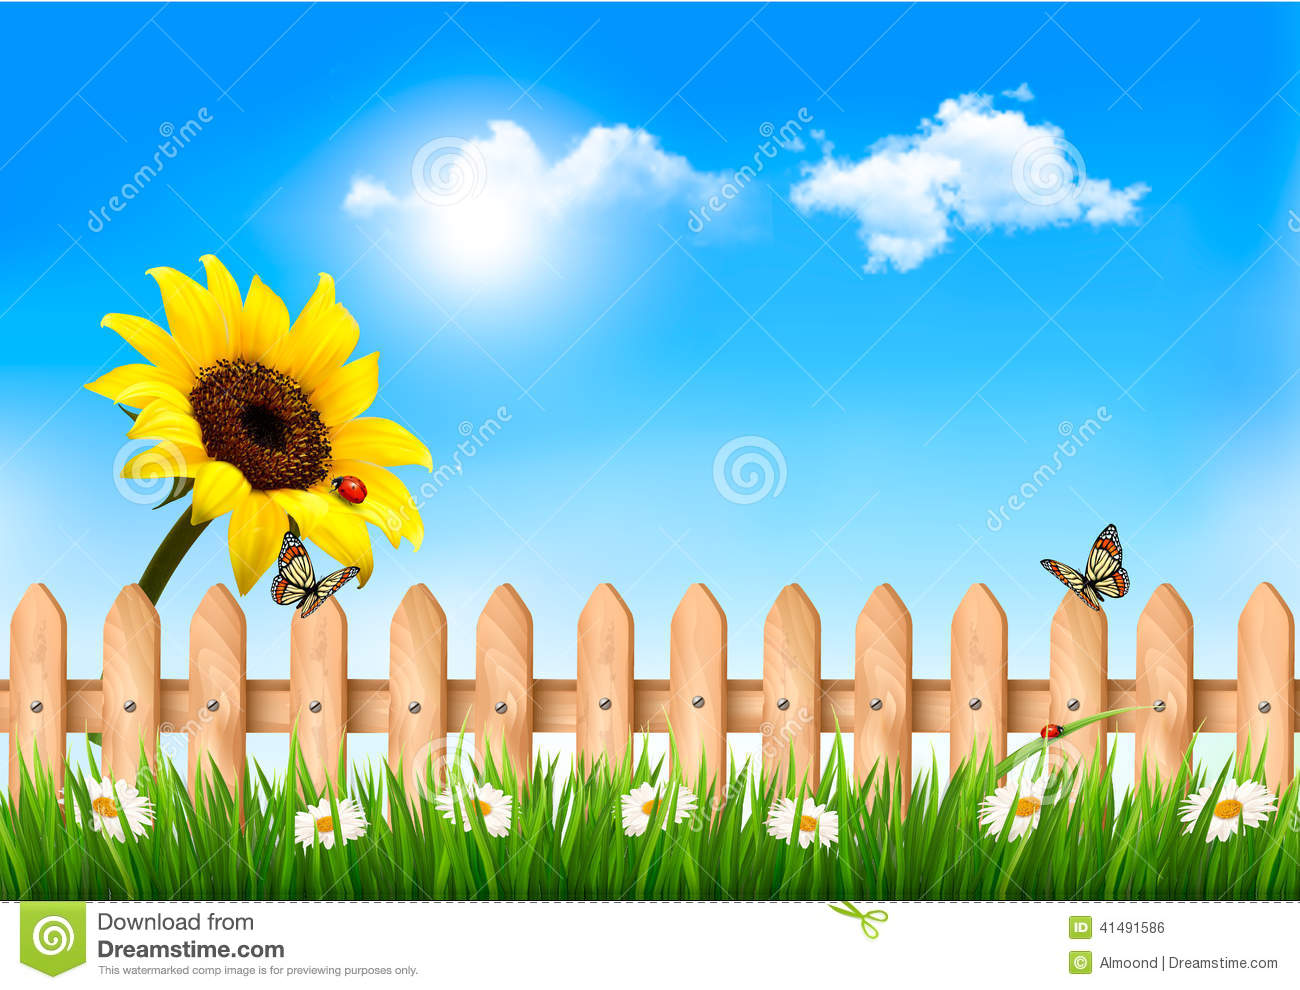 Nature Background Clipart - Clipart Suggest